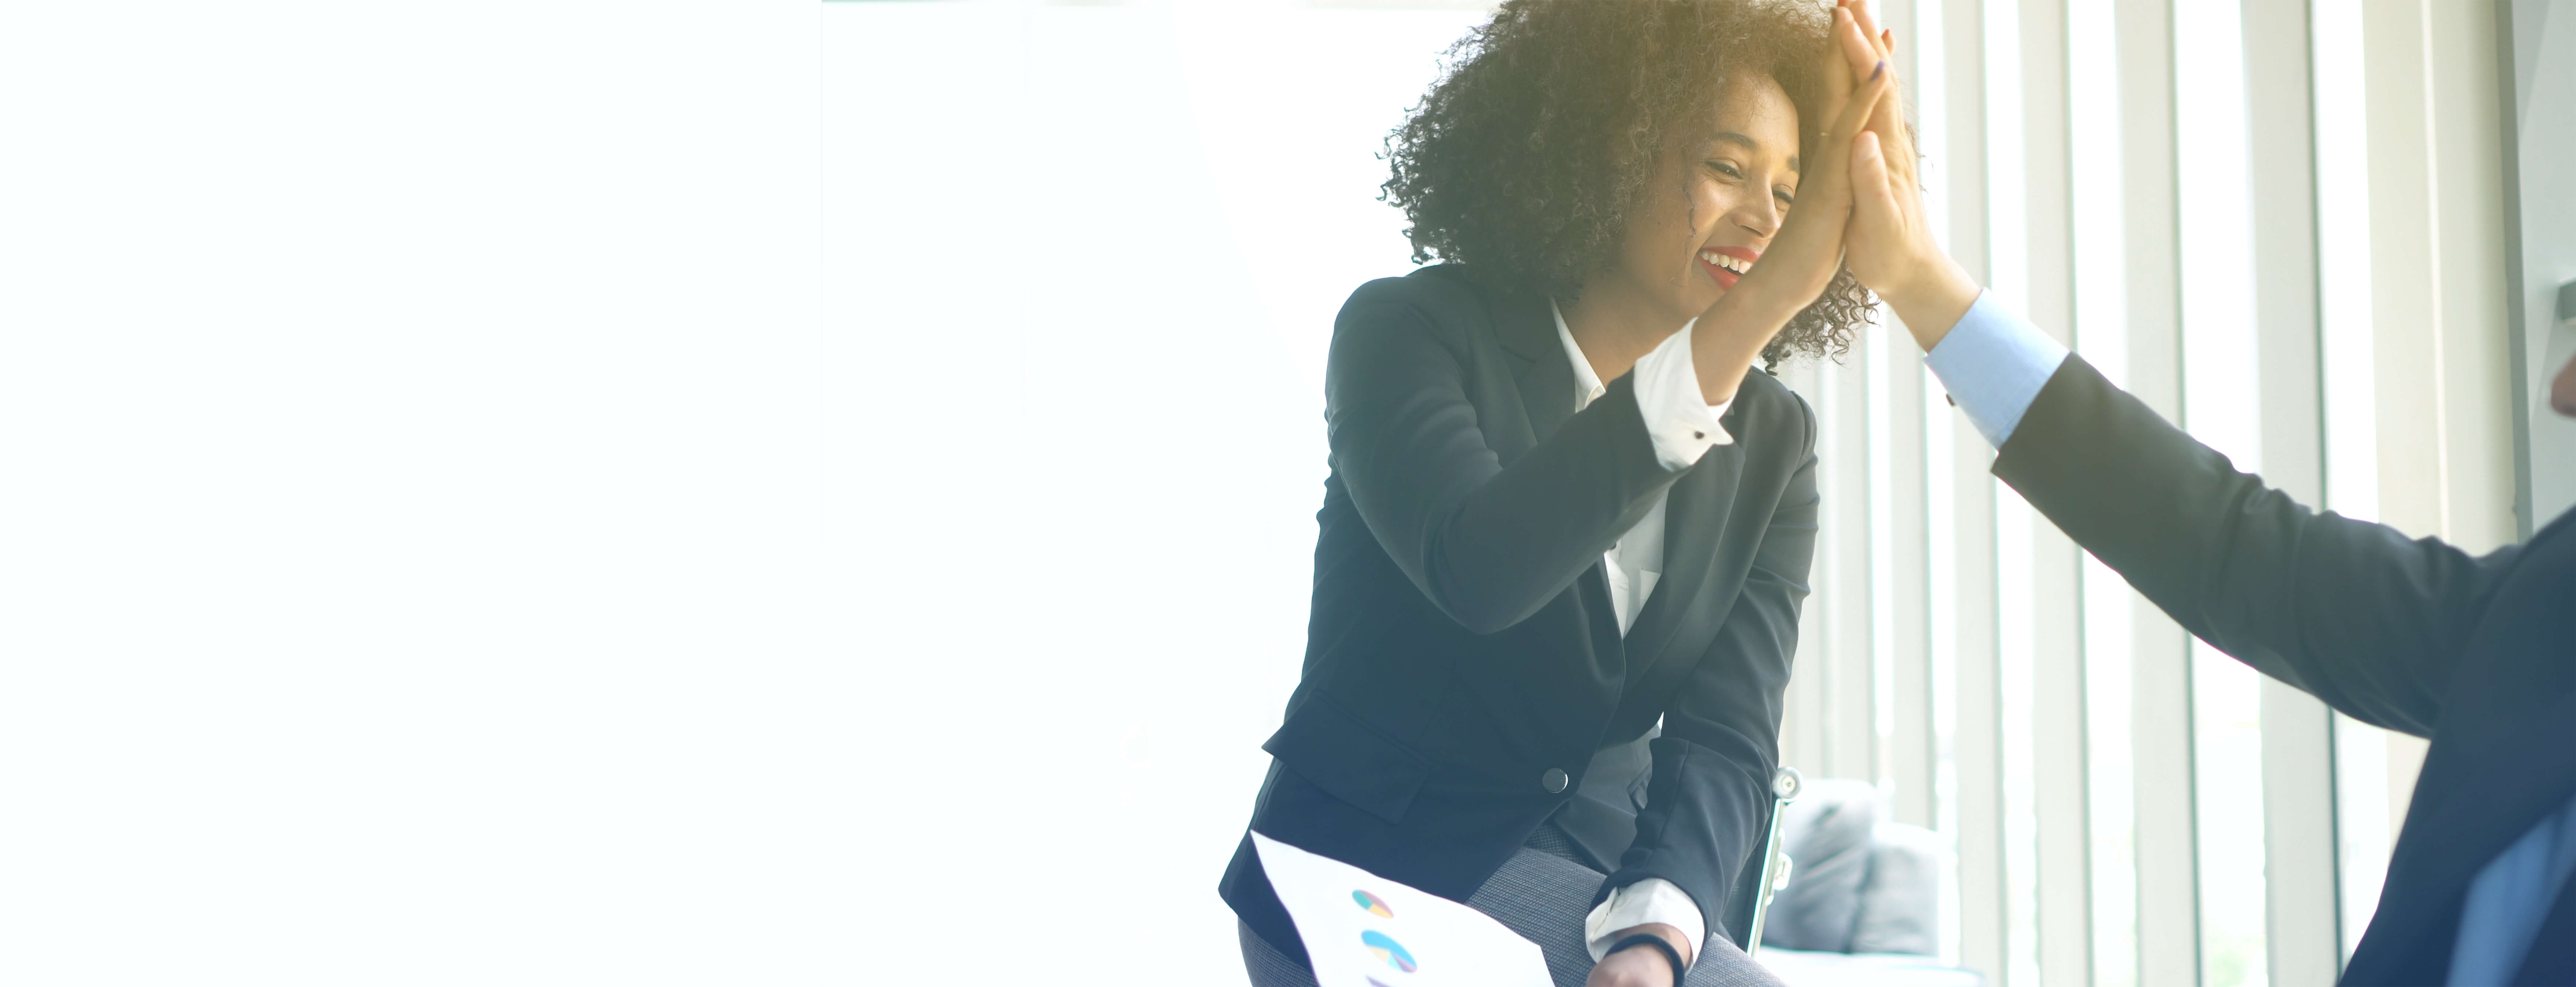 LC GLOBAL Consulting Inc - Executive Coaching - New York 2021 - AdobeStock_316396184 (1) - compressed